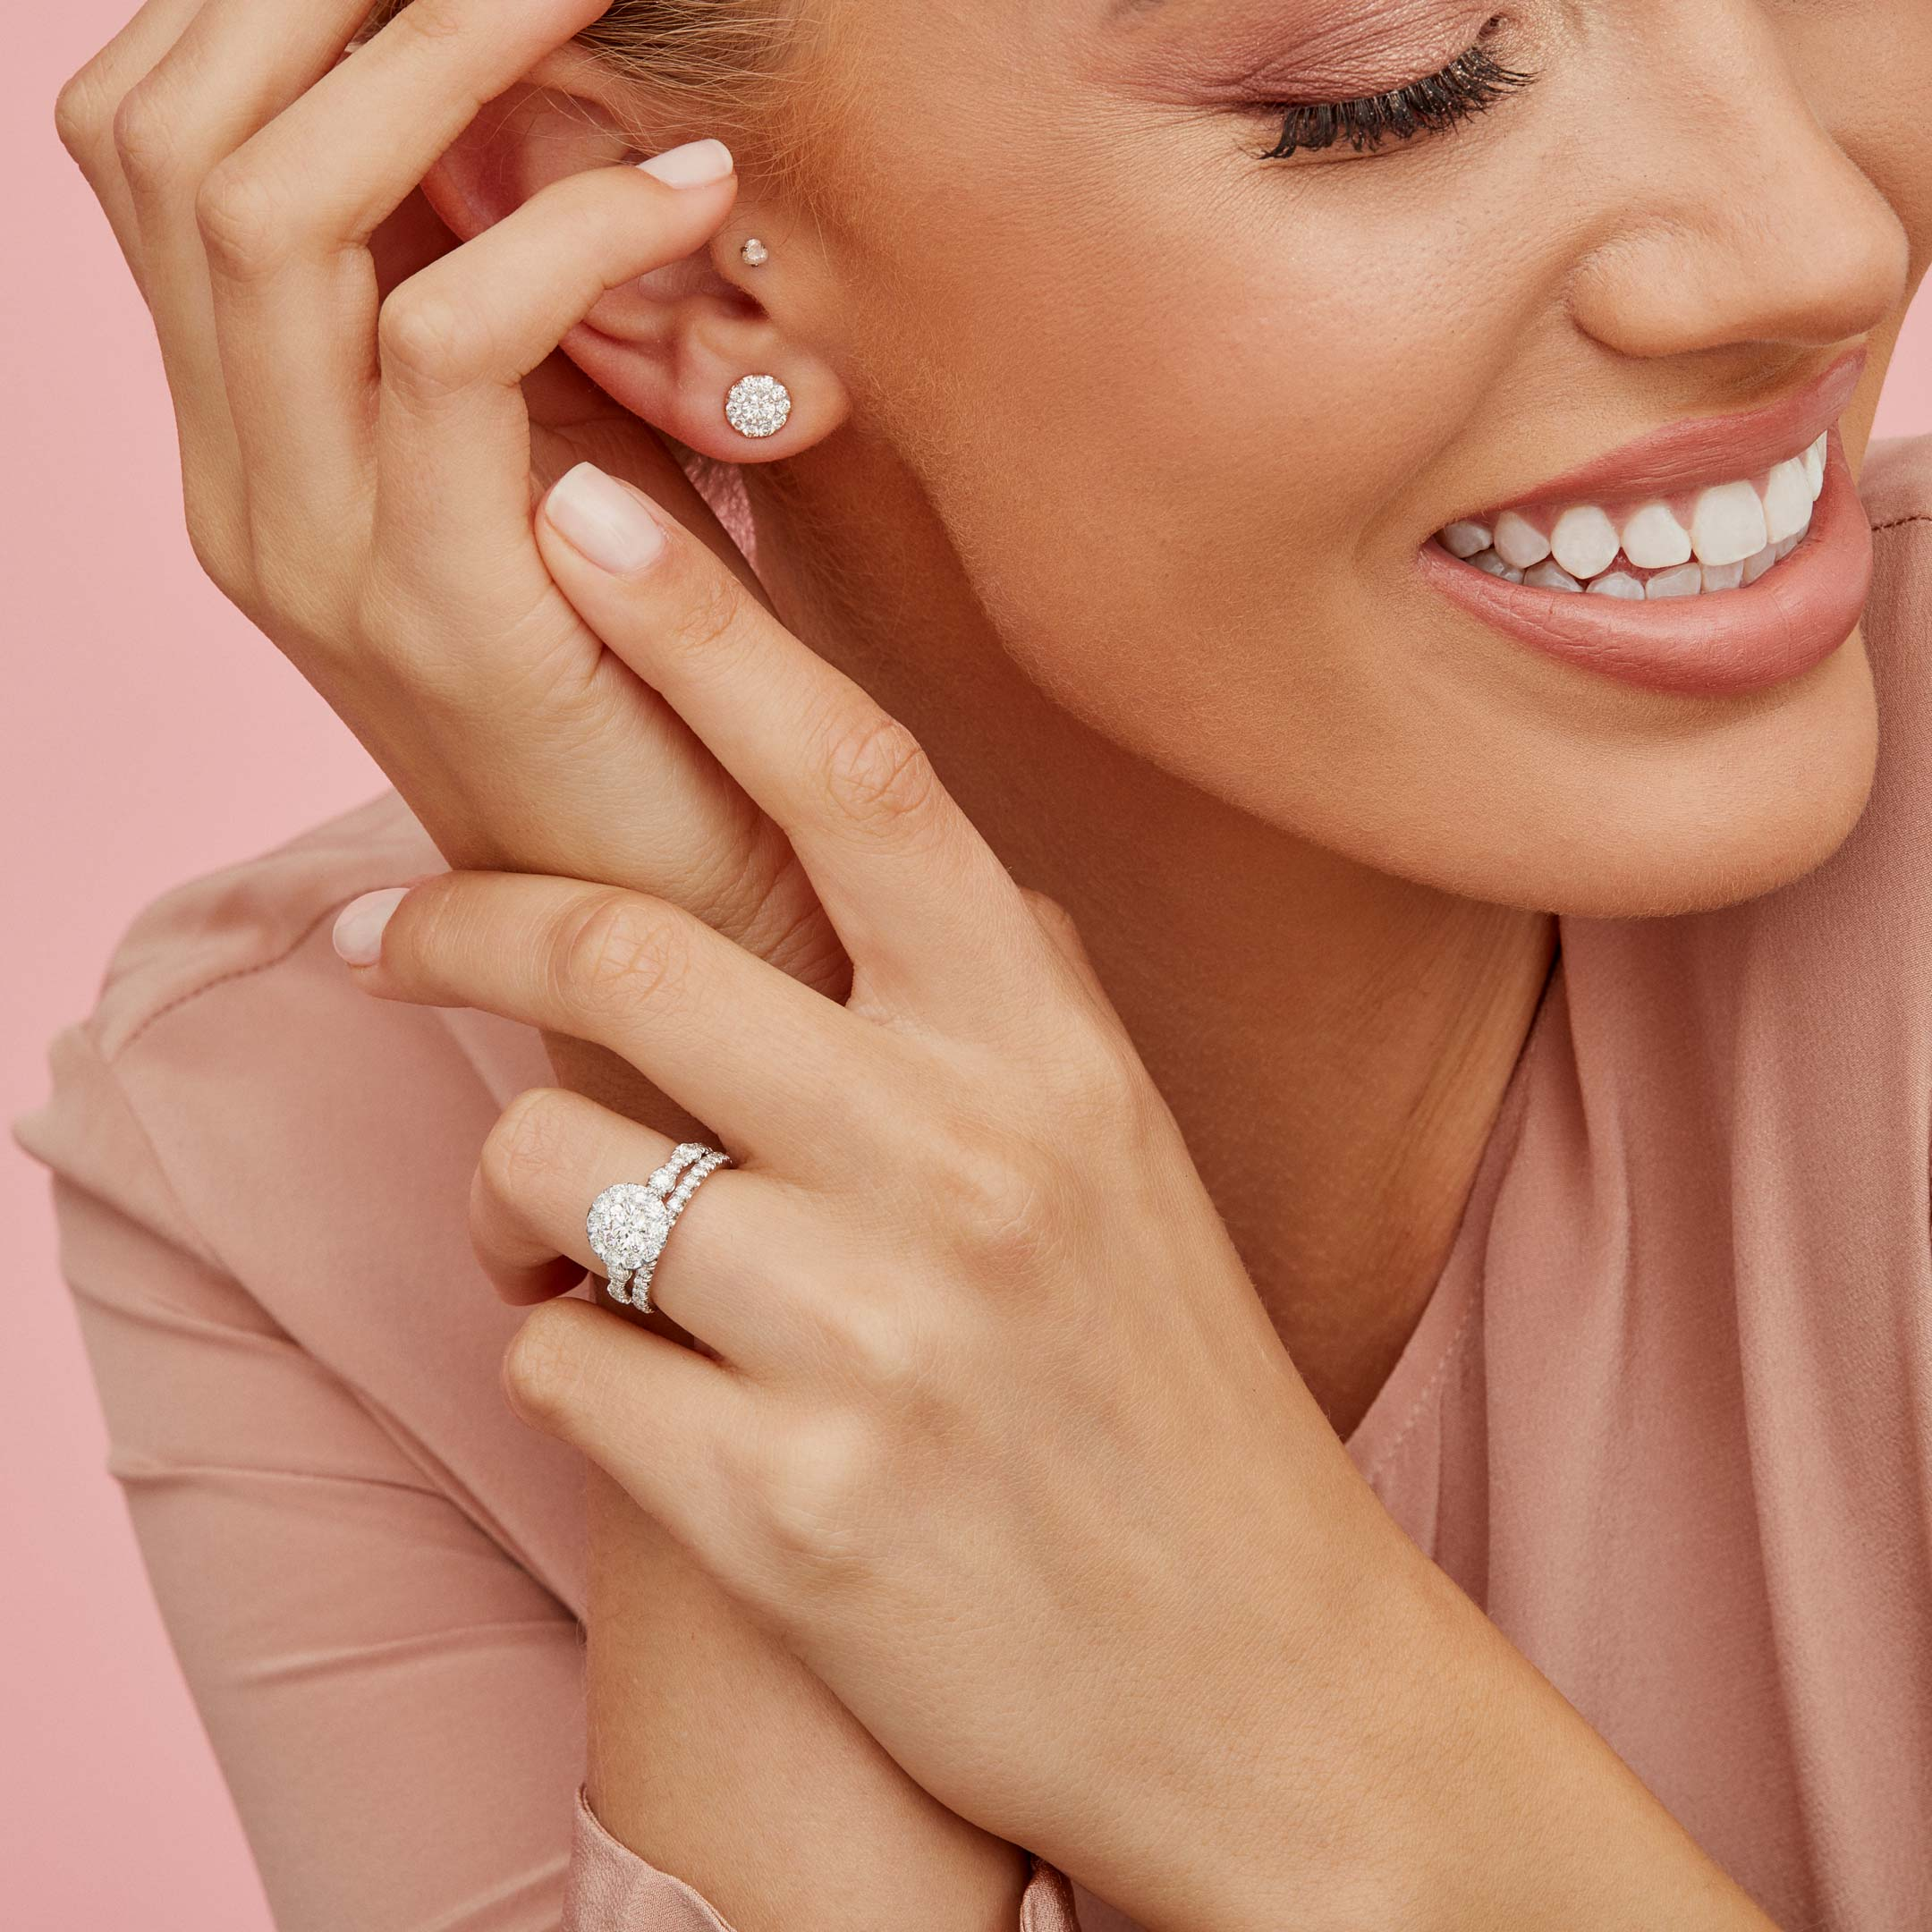 Celine Round Brilliant Seamless Solitaire™ Diamond Stud Earrings in 18k Rose Gold Model Lifestyle by Oui by Jean Dousset